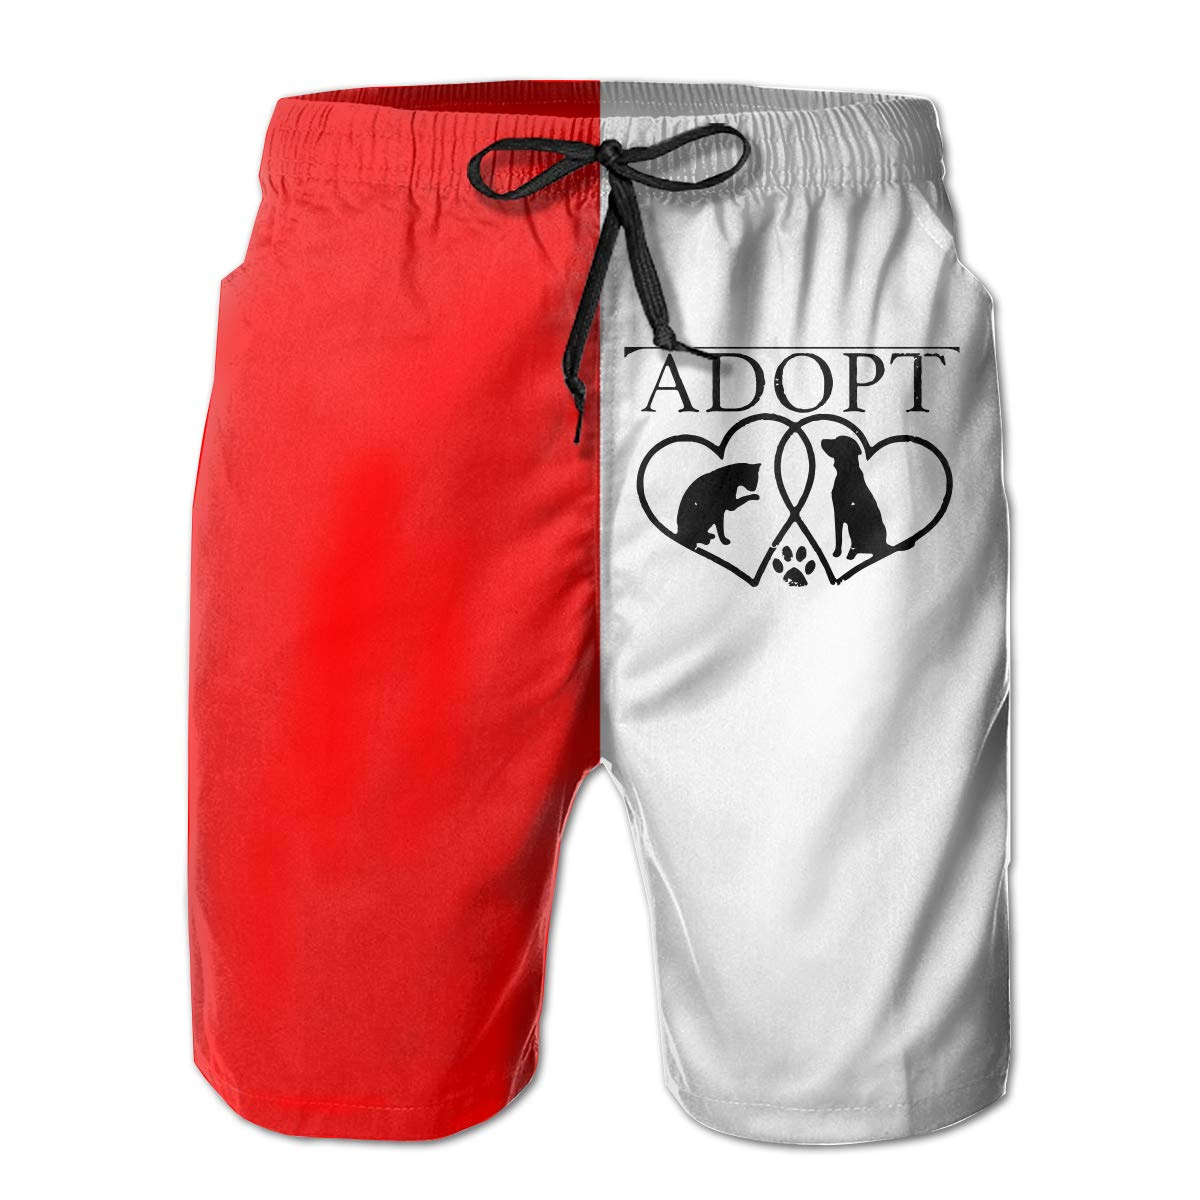 Mens Athletic Beach Shorts Polyester Dog Cat Adopt Love Board Shorts with Pockets